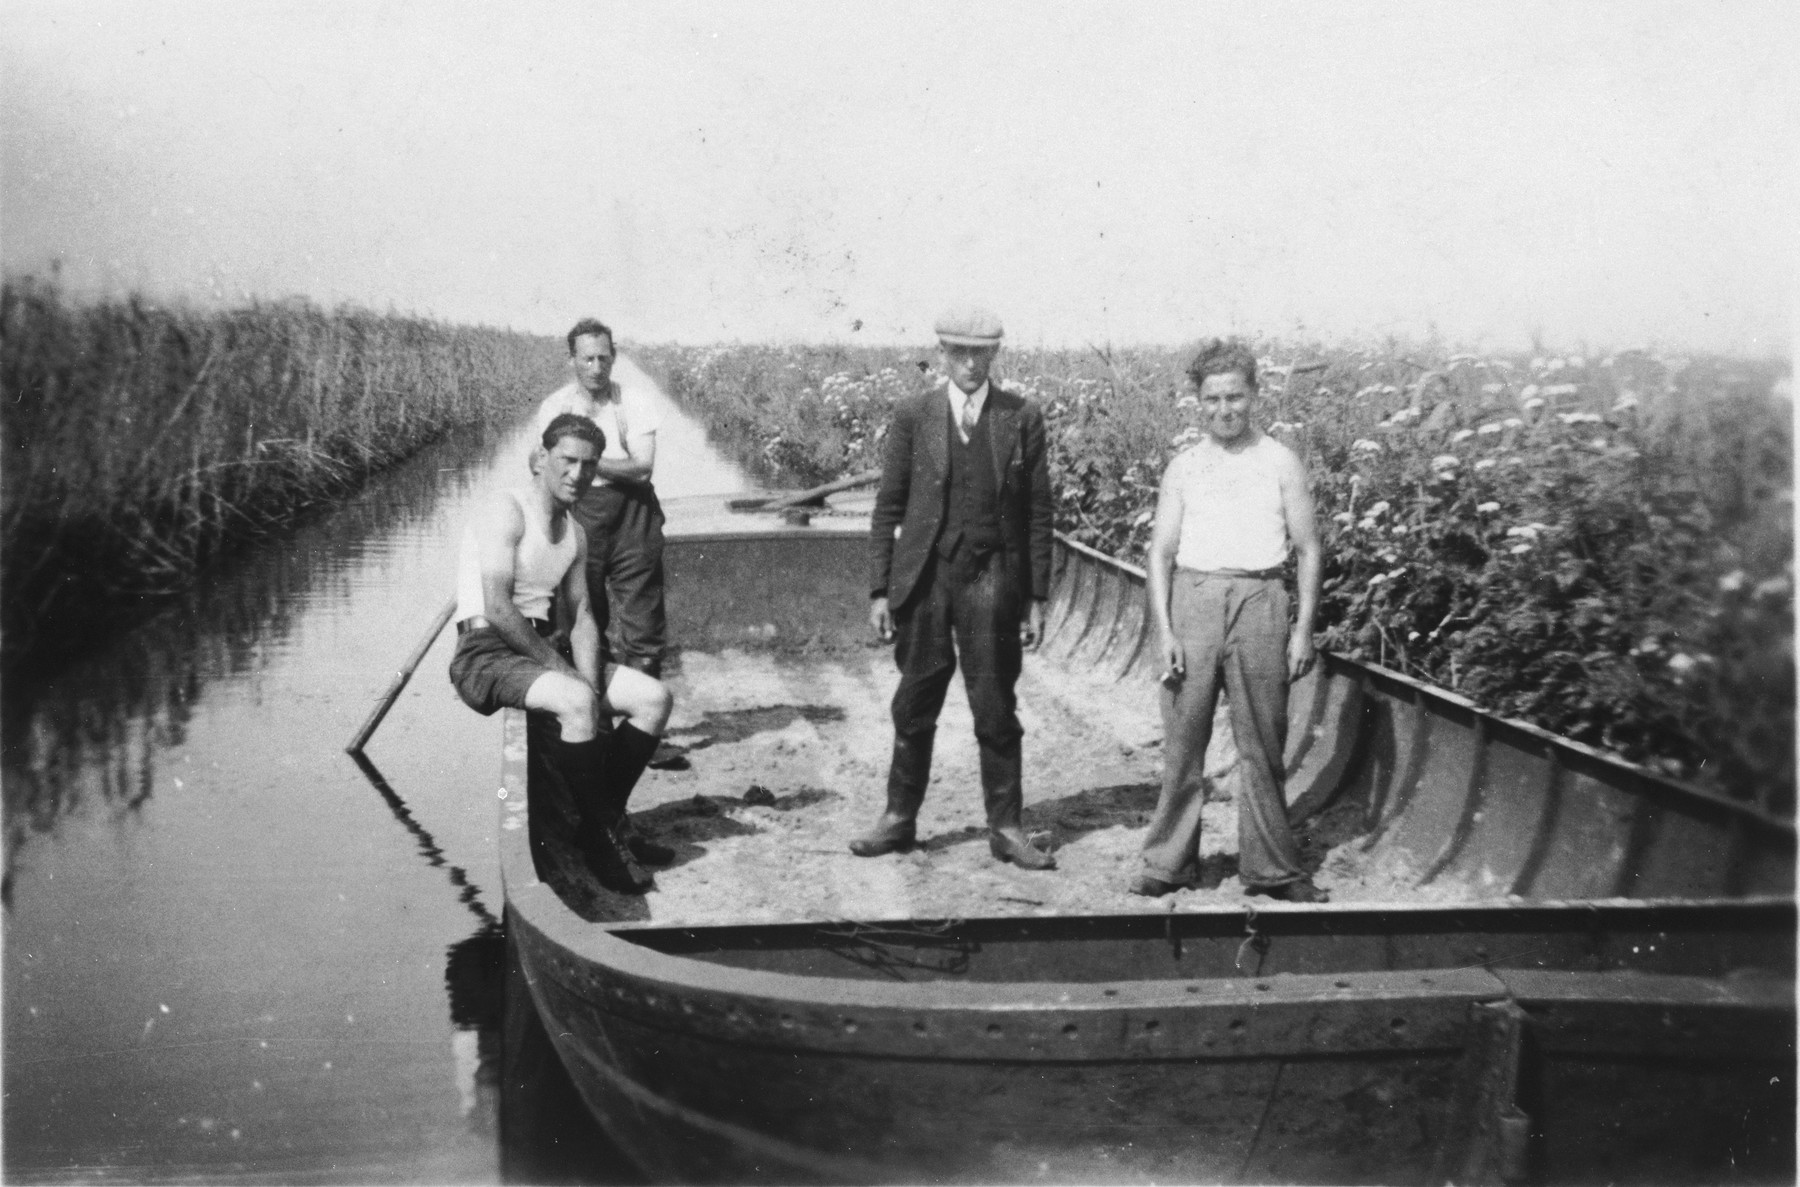 Prisoners pose on a barge that is in a canal that they are digging in the Staphorst-Rouveen labor camp.  Pictured from left to right are Coenraad Rood, M. Cohen, Boss Vruggink and Frenkel.